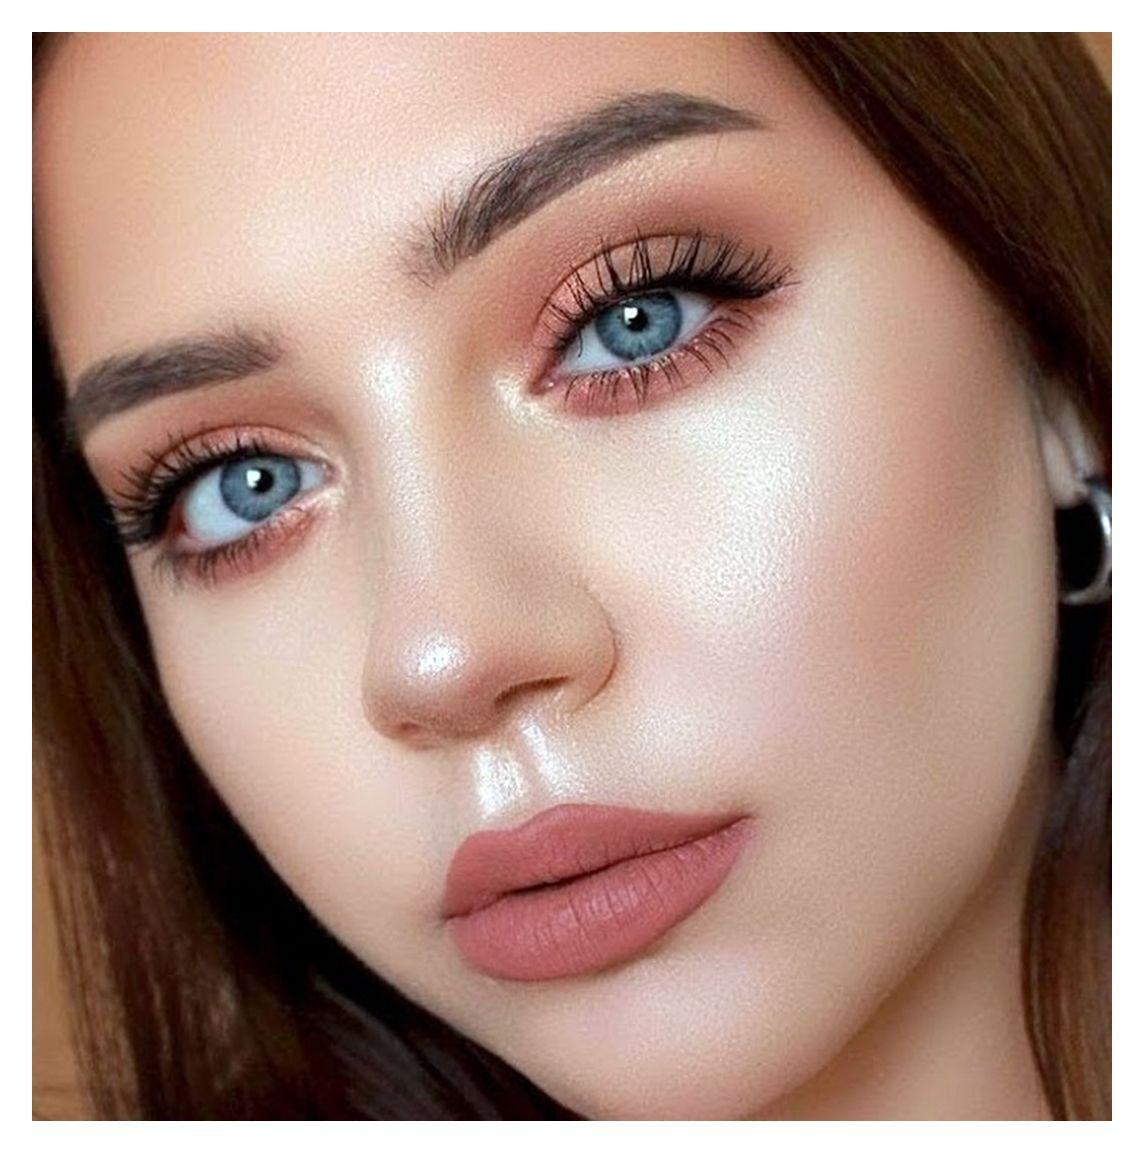 Pin By Julia Bicudo On Misc Packs In 2020 Blush Makeup Makeup Trends Summer Makeup Trends